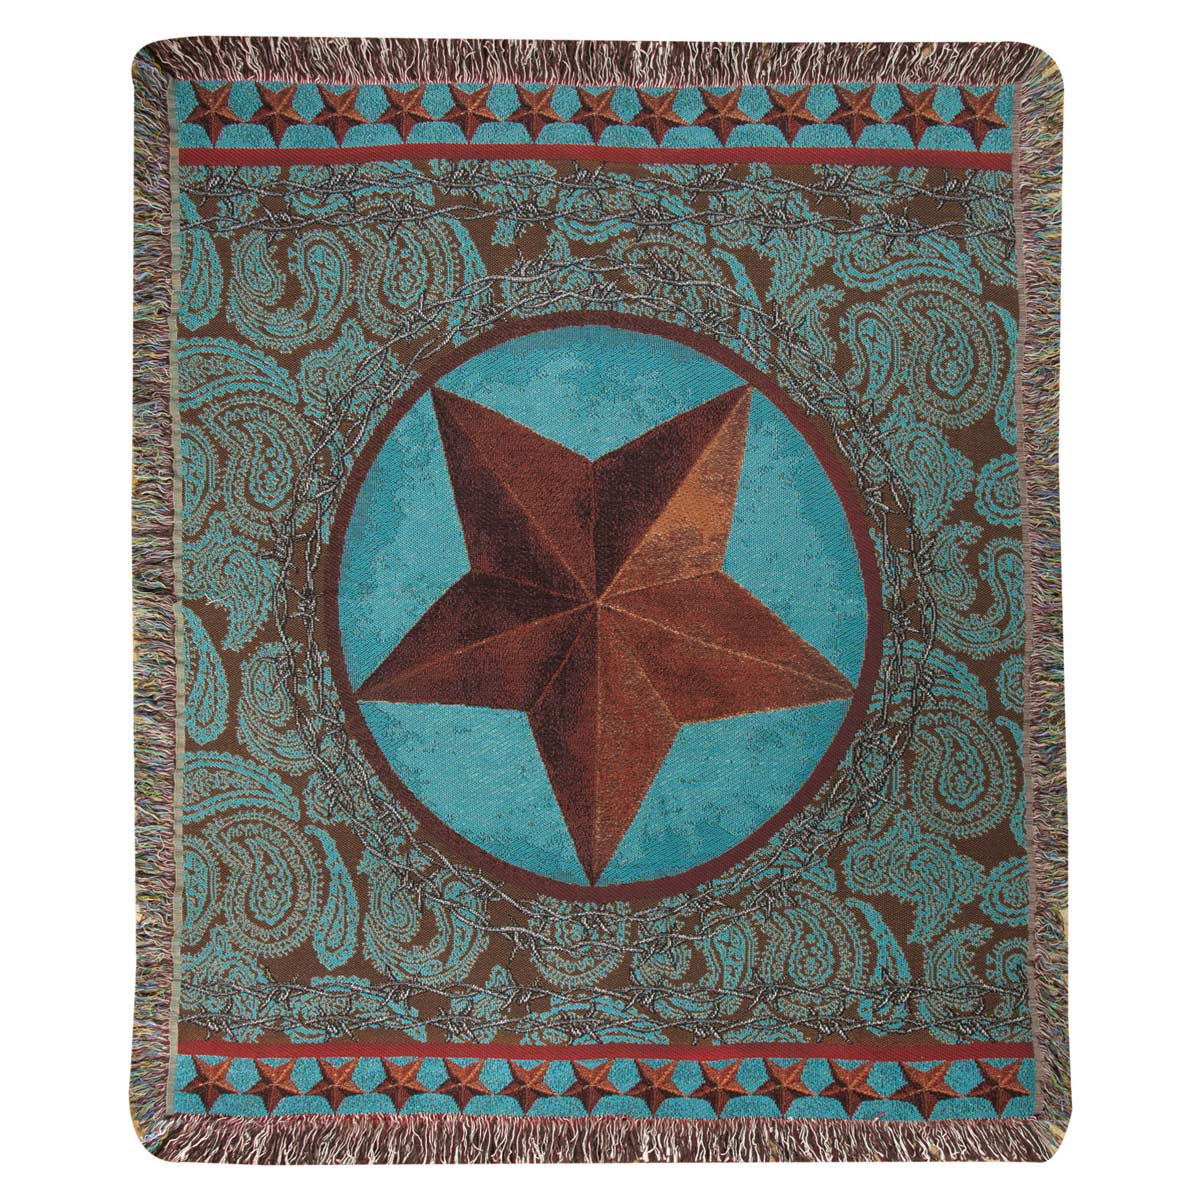 Turquoise Western Star Tapestry Throw